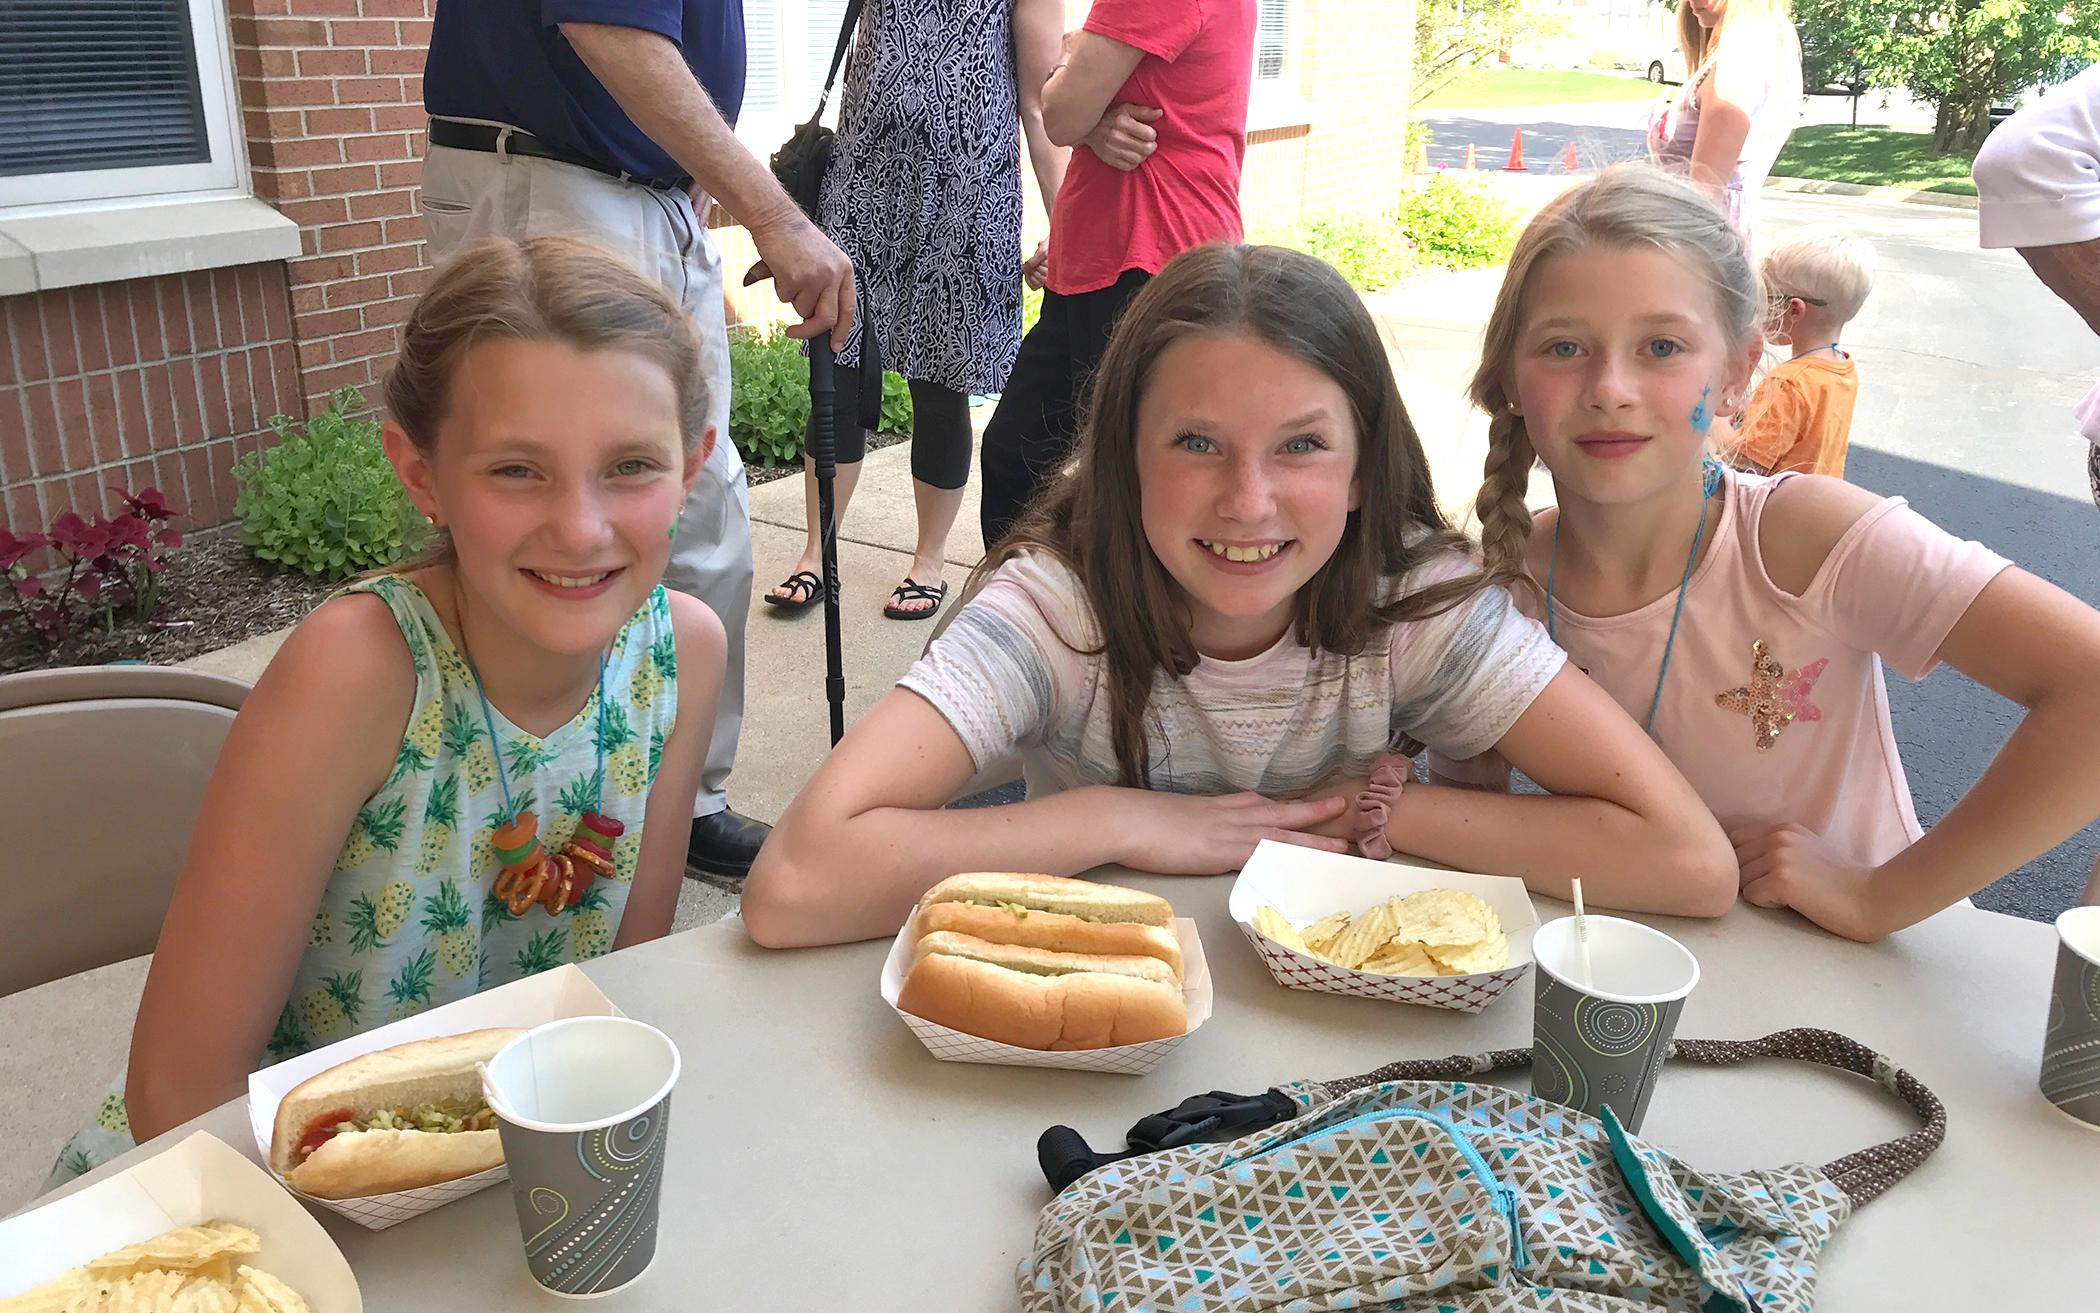 Hot Dogs and Community Connection: Churches Try Neighborhood Cookouts